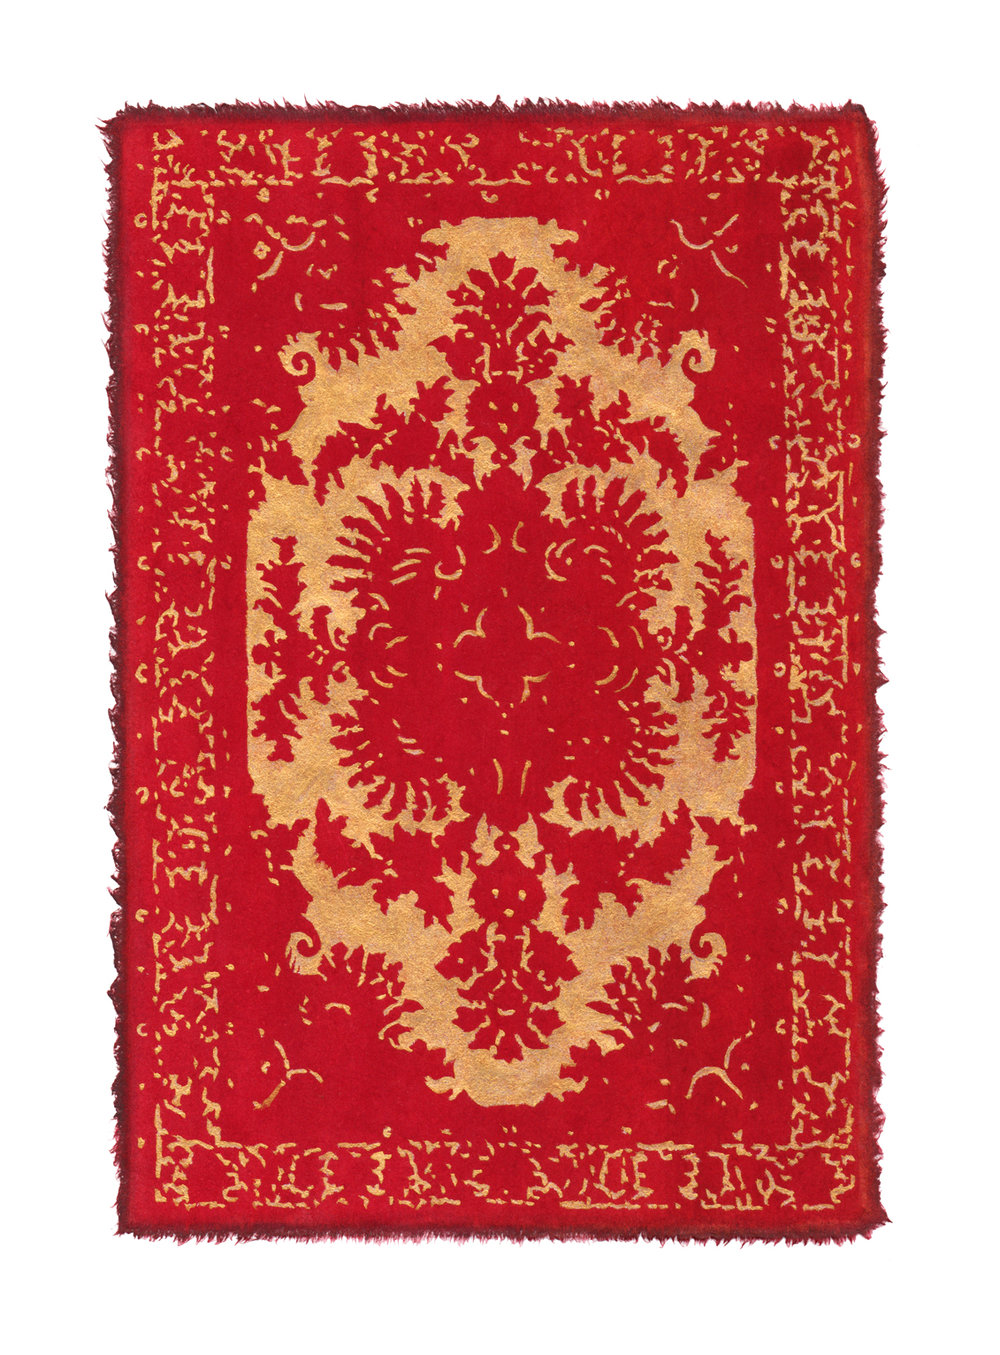 1_Gabriele_Red_Magic_Carpet_Artsy.jpg